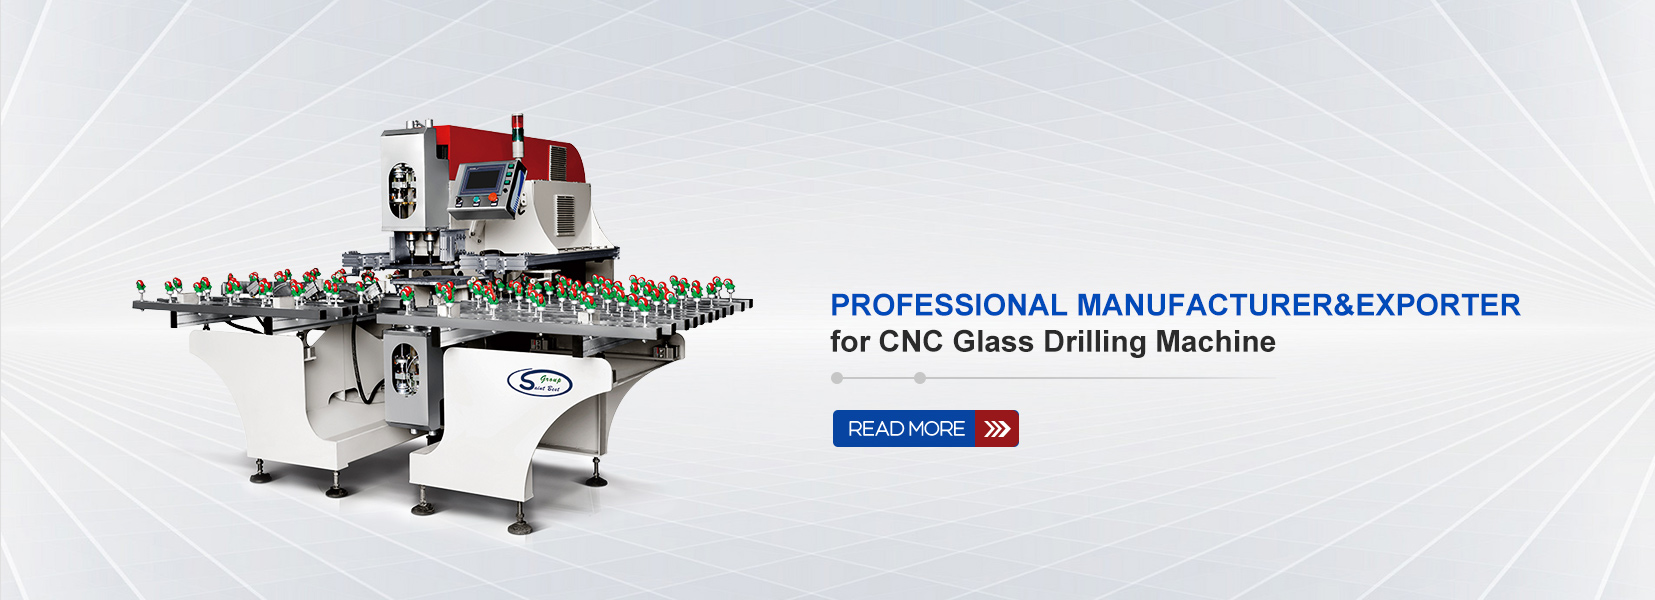 Professional MANUFACTURER&EXPORTER  for CNC Glass Drilling Machine